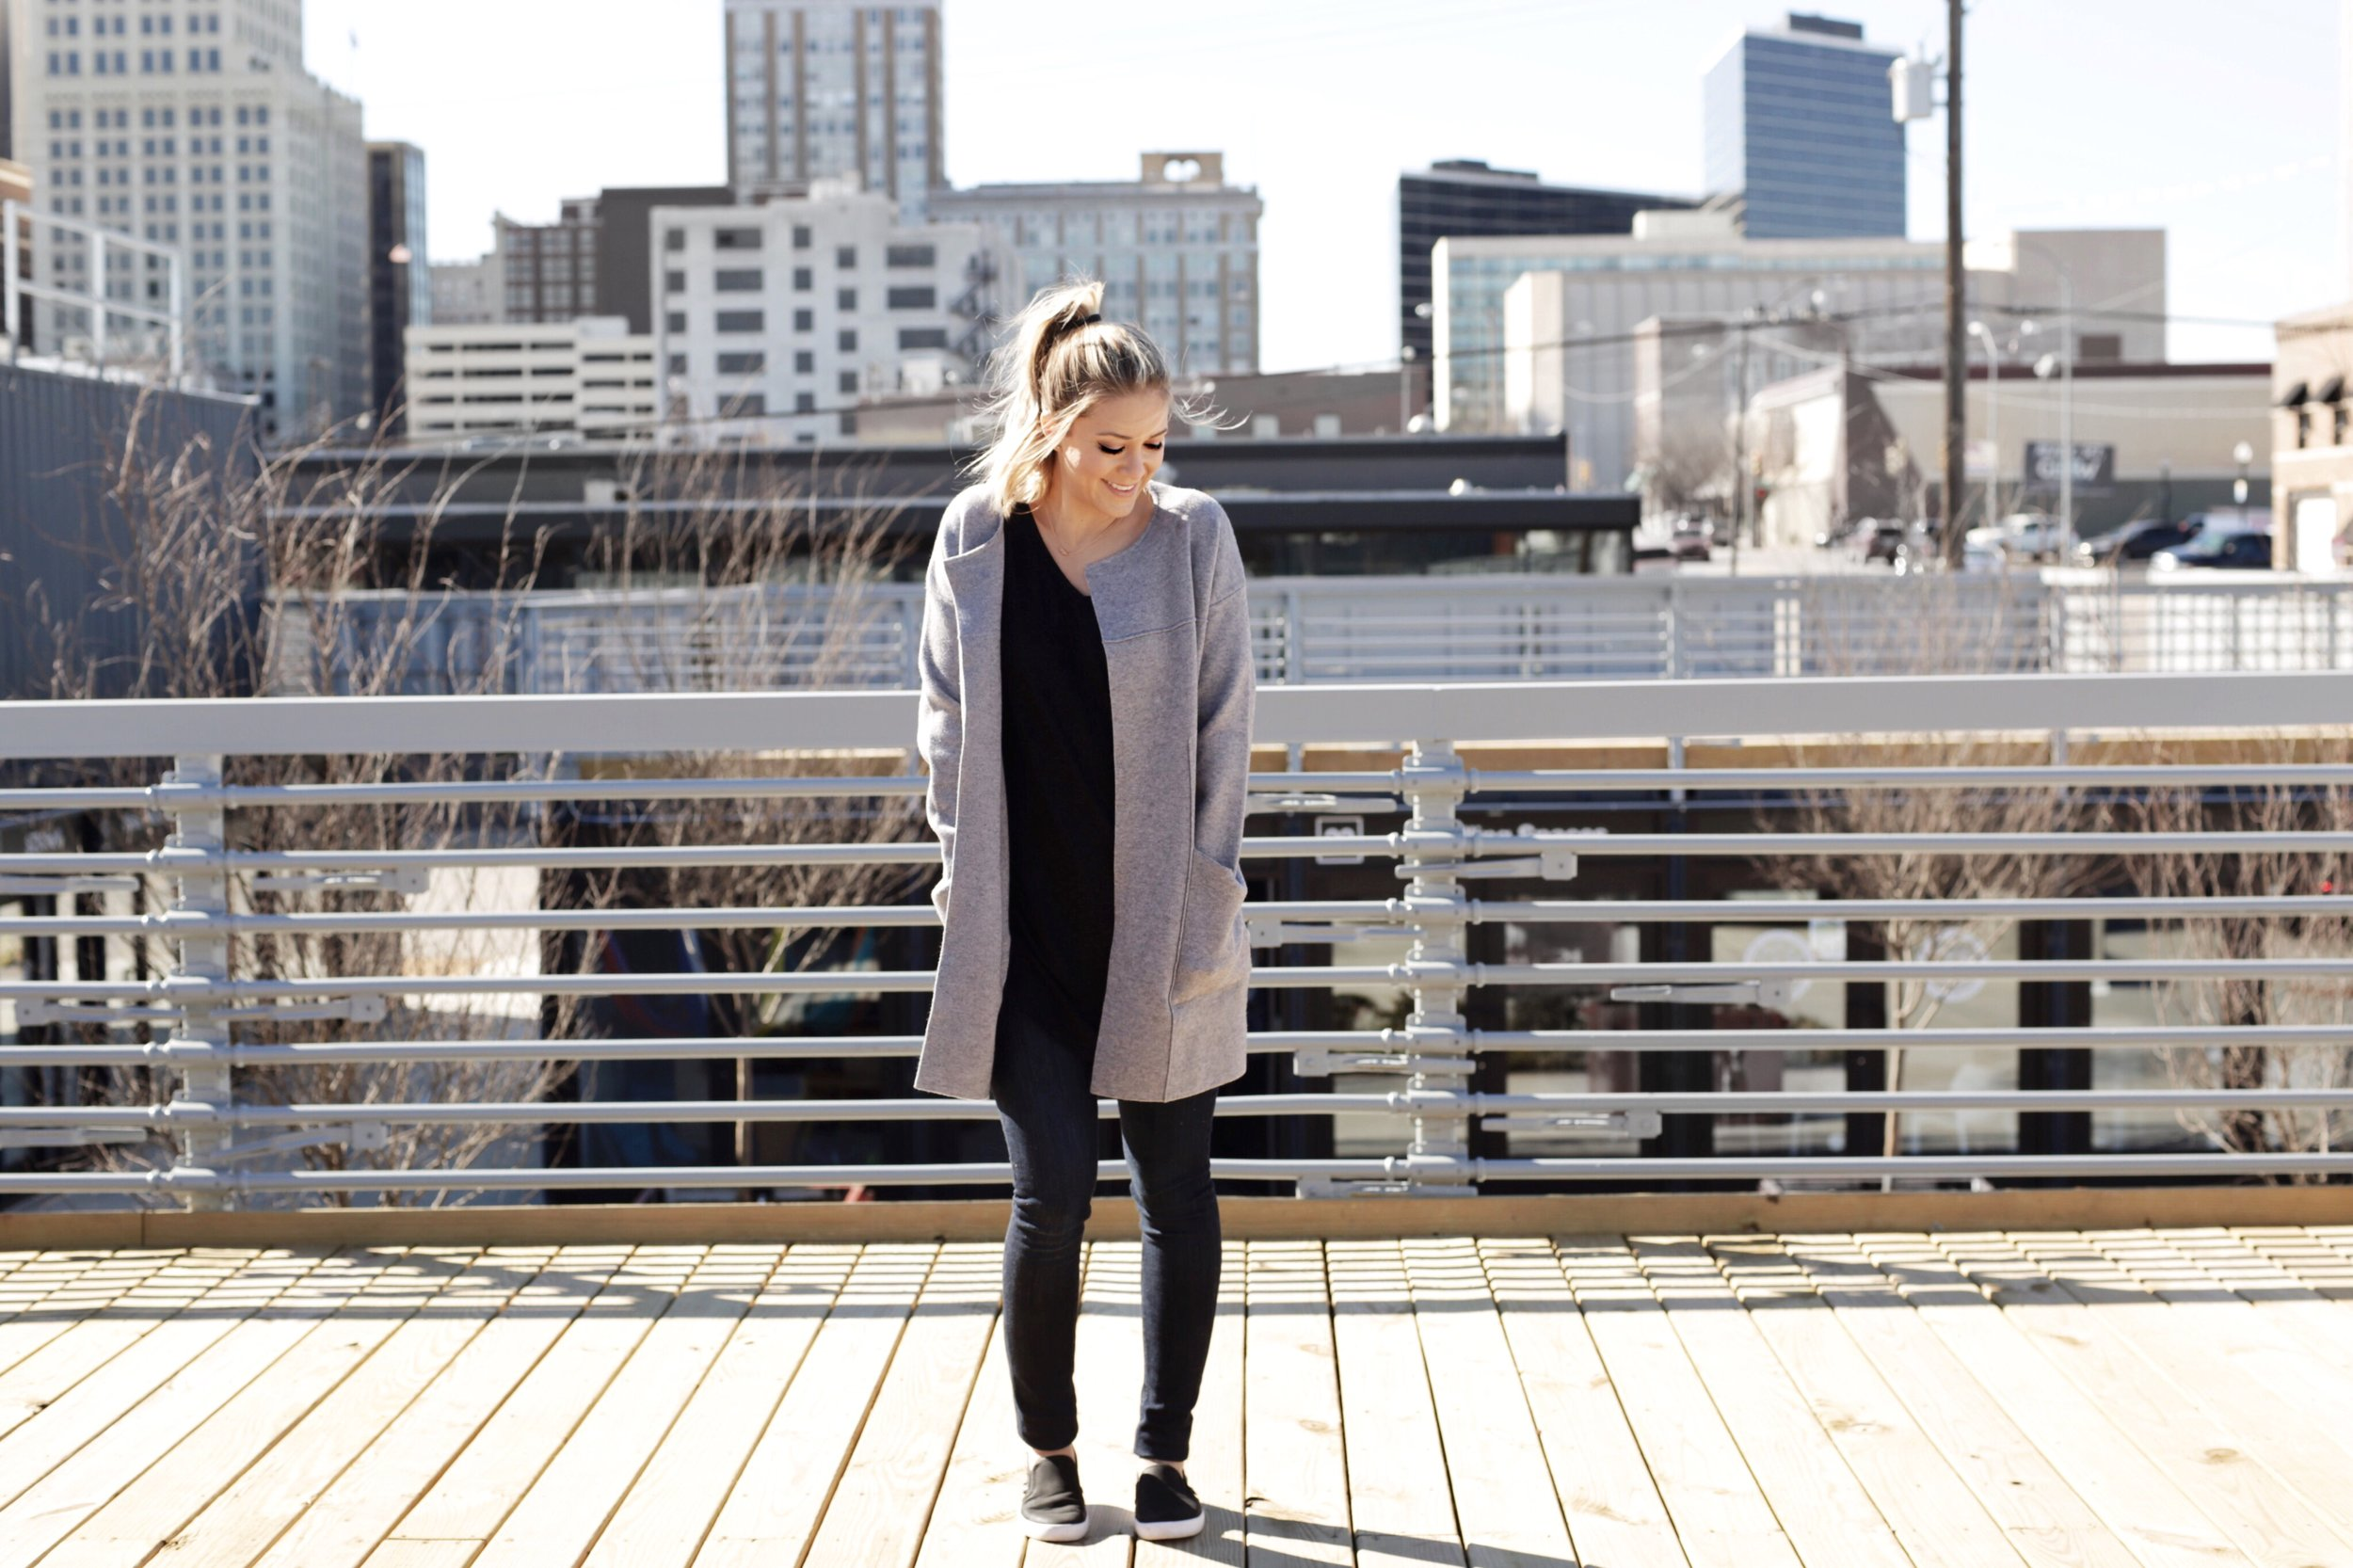 DETAILS:  Cardigan Jacket  (See more styles I love below) |  Top (or similar  here )| Shoes  |  Jeans  |  Necklace  |  Makeup